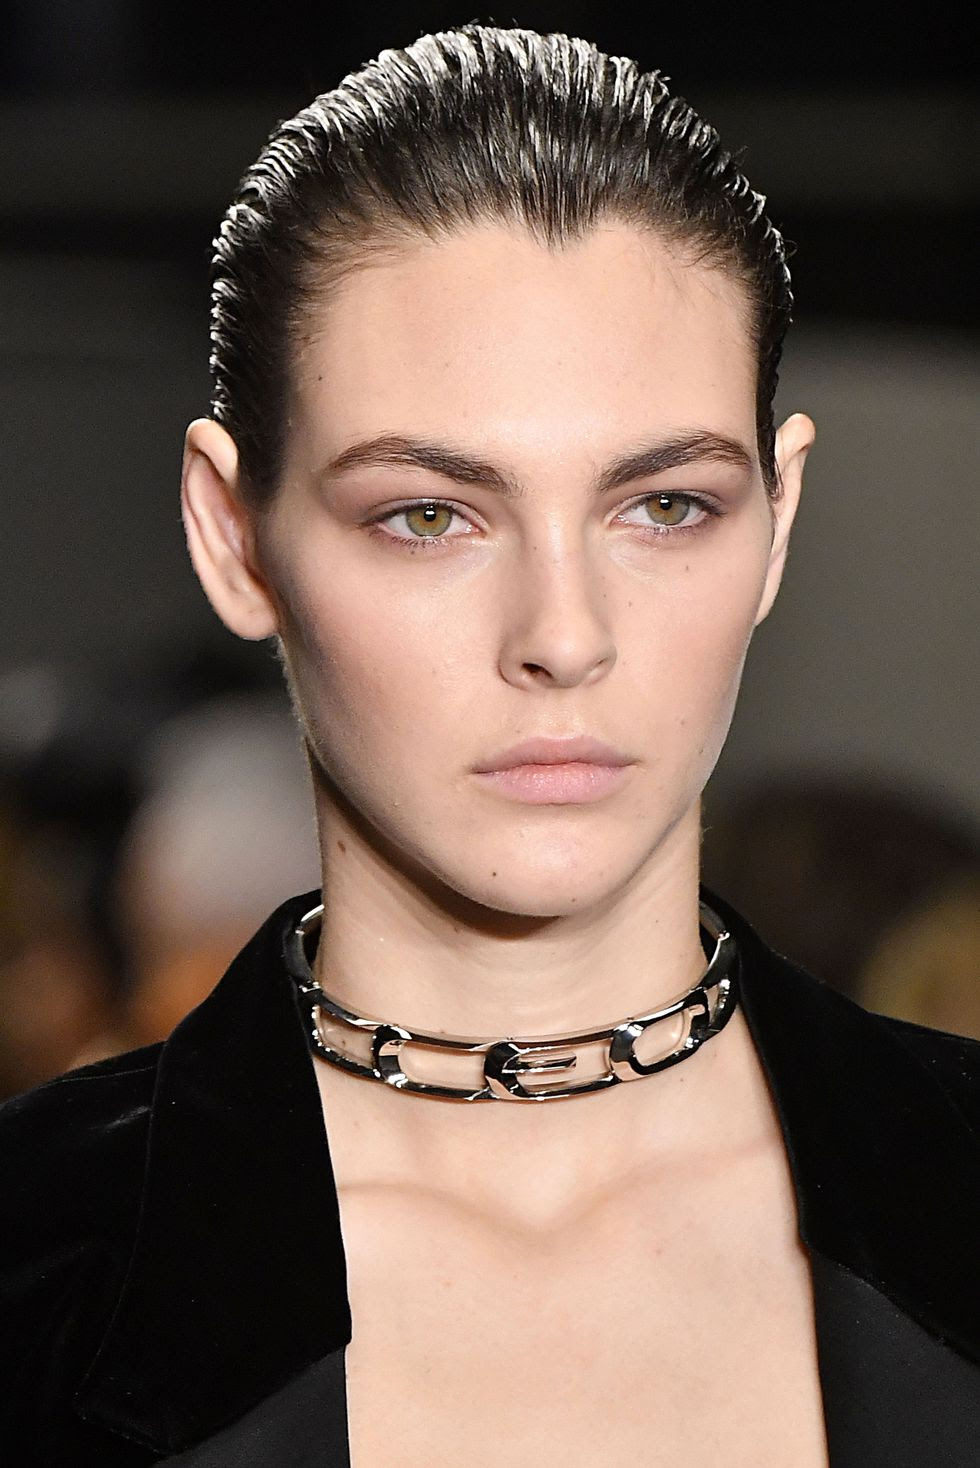 NYC Fashion Week Fall/Winter '18 Brow Trends 4